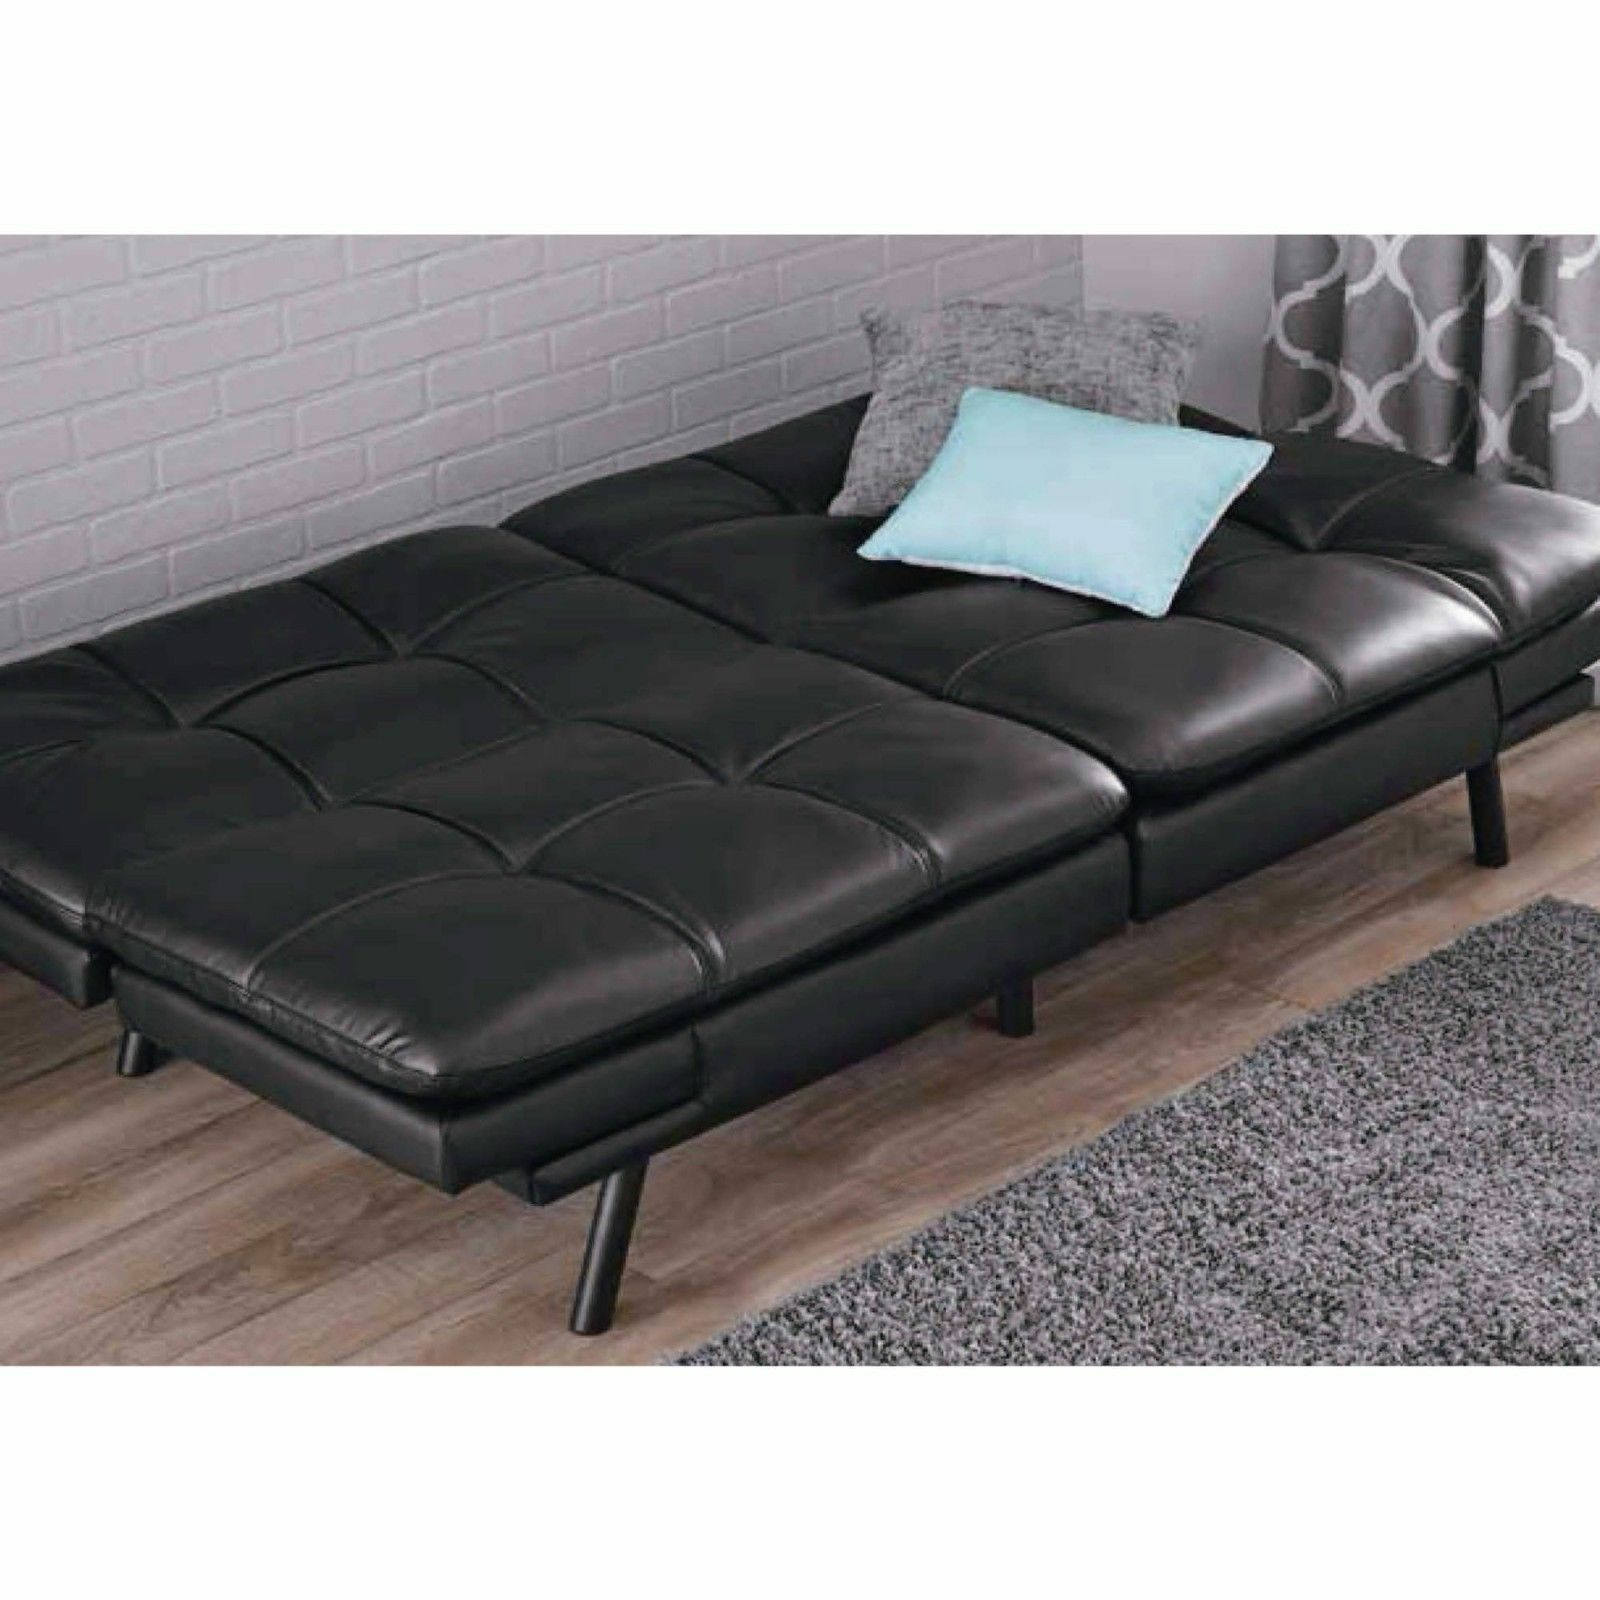 Mainstays Faux Leather Sofa Beds